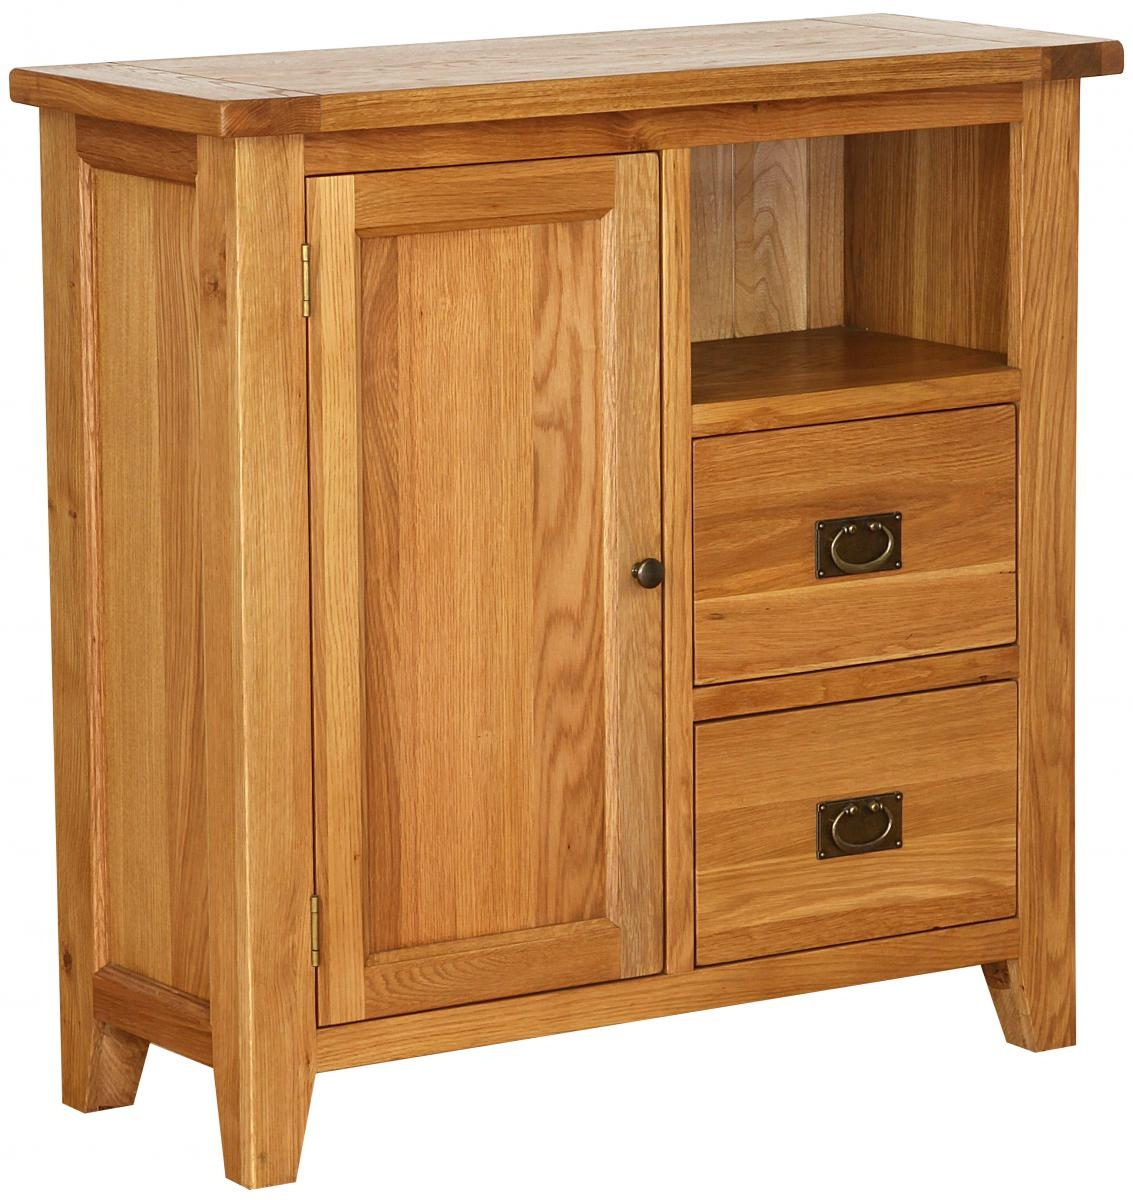 Vancouver Petite Oak Organiser Cabinet Tall with 1 Shelf  : 3 Vancouver Petite Oak Organiser Cabinet Tall with 1 Shelf 1 Door 2 Drawer from www.choicefurnituresuperstore.co.uk size 1133 x 1200 jpeg 476kB